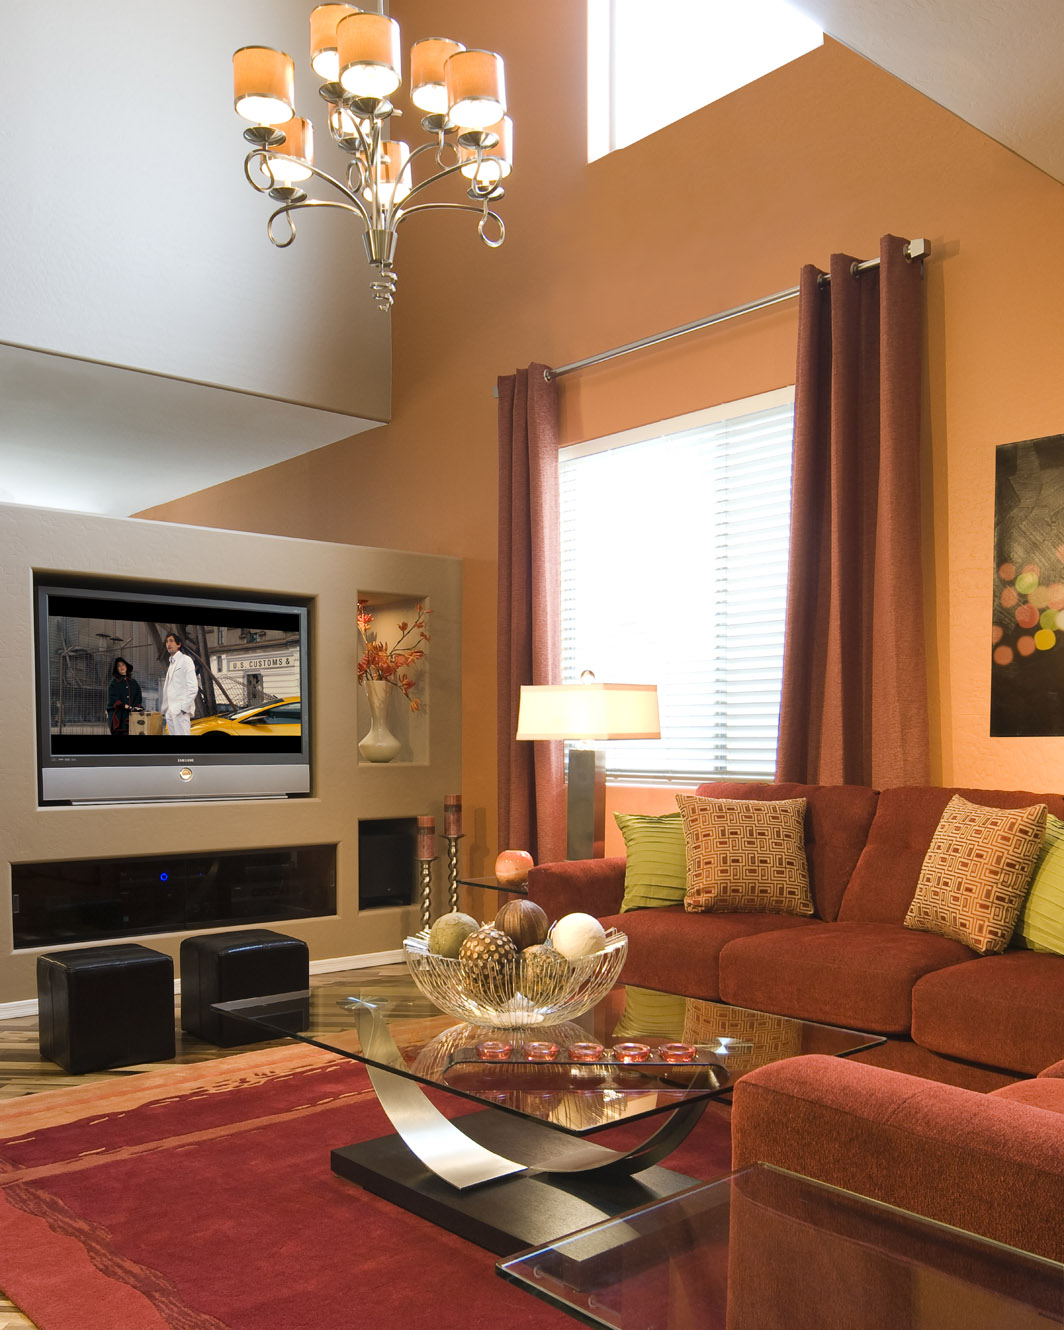 30 Small Living Room Decorating Ideas: 30 Living Room Design Ideas With TV Set On Wall